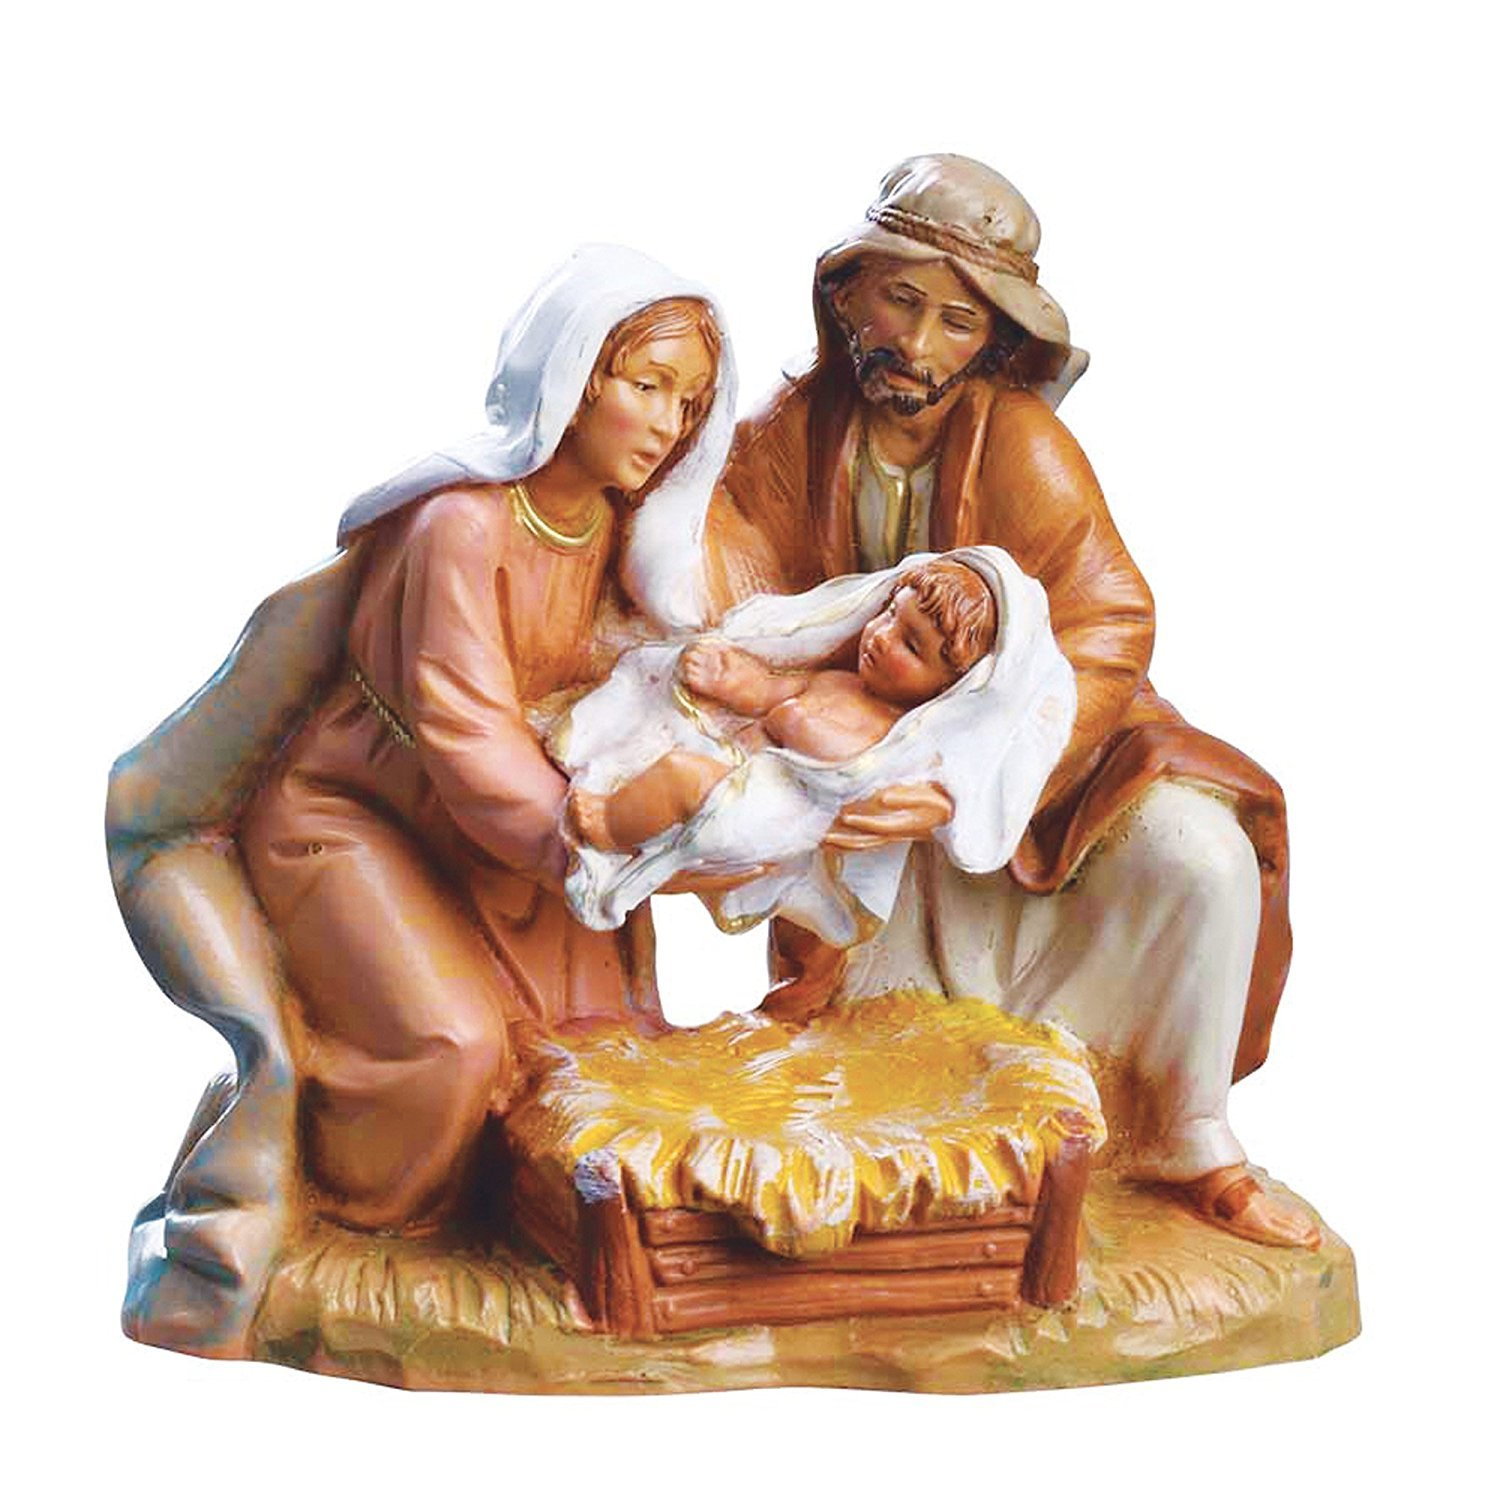 Fontanini Fontanini 5-Inch scale The Birth of Christ Roman Inc. 53513